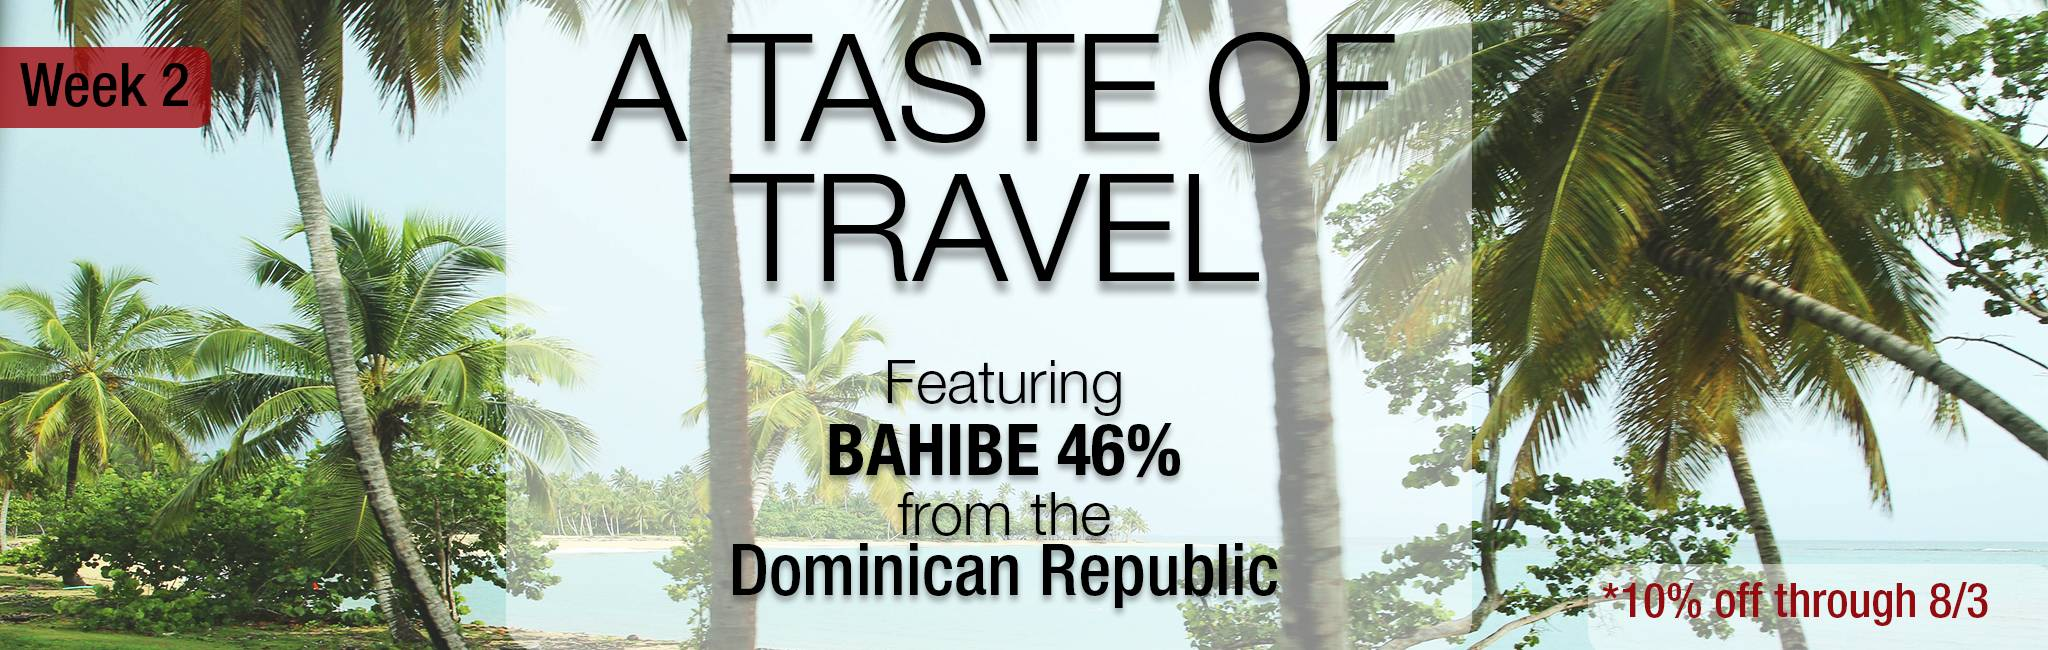 A Taste of Travel_Bahibe